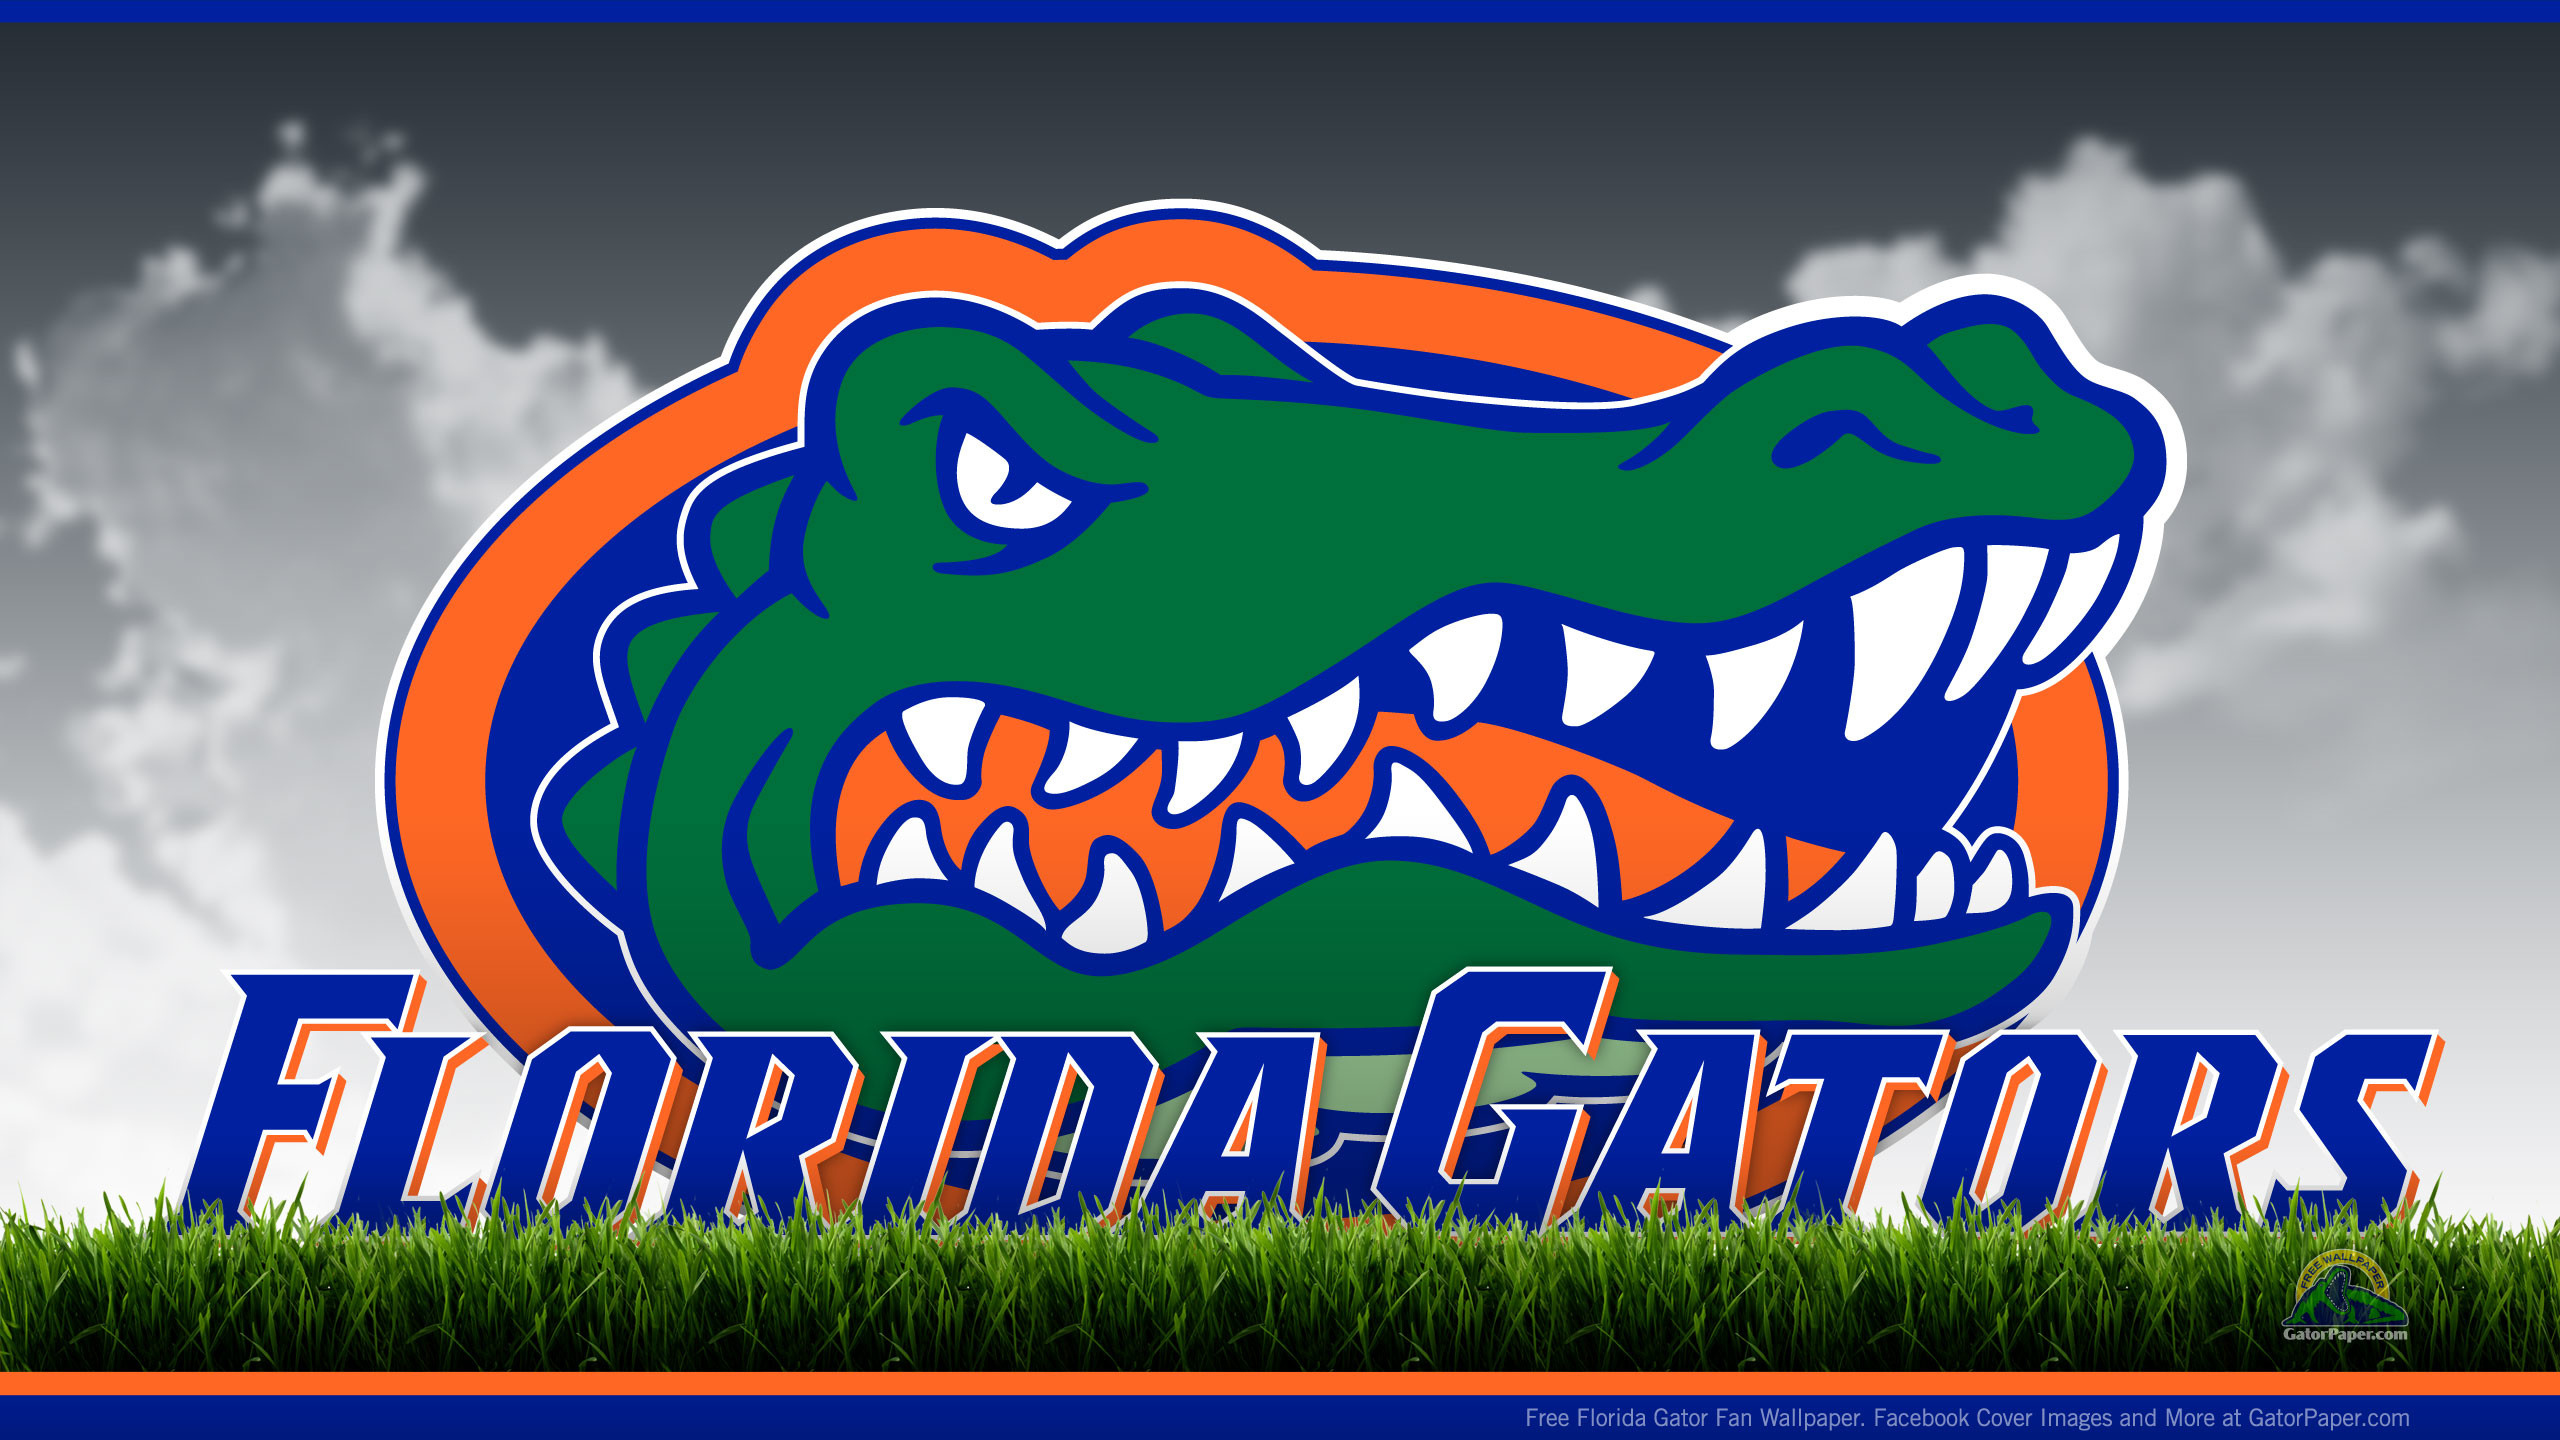 Cool florida gator wallpapers 71 images for Florida cool